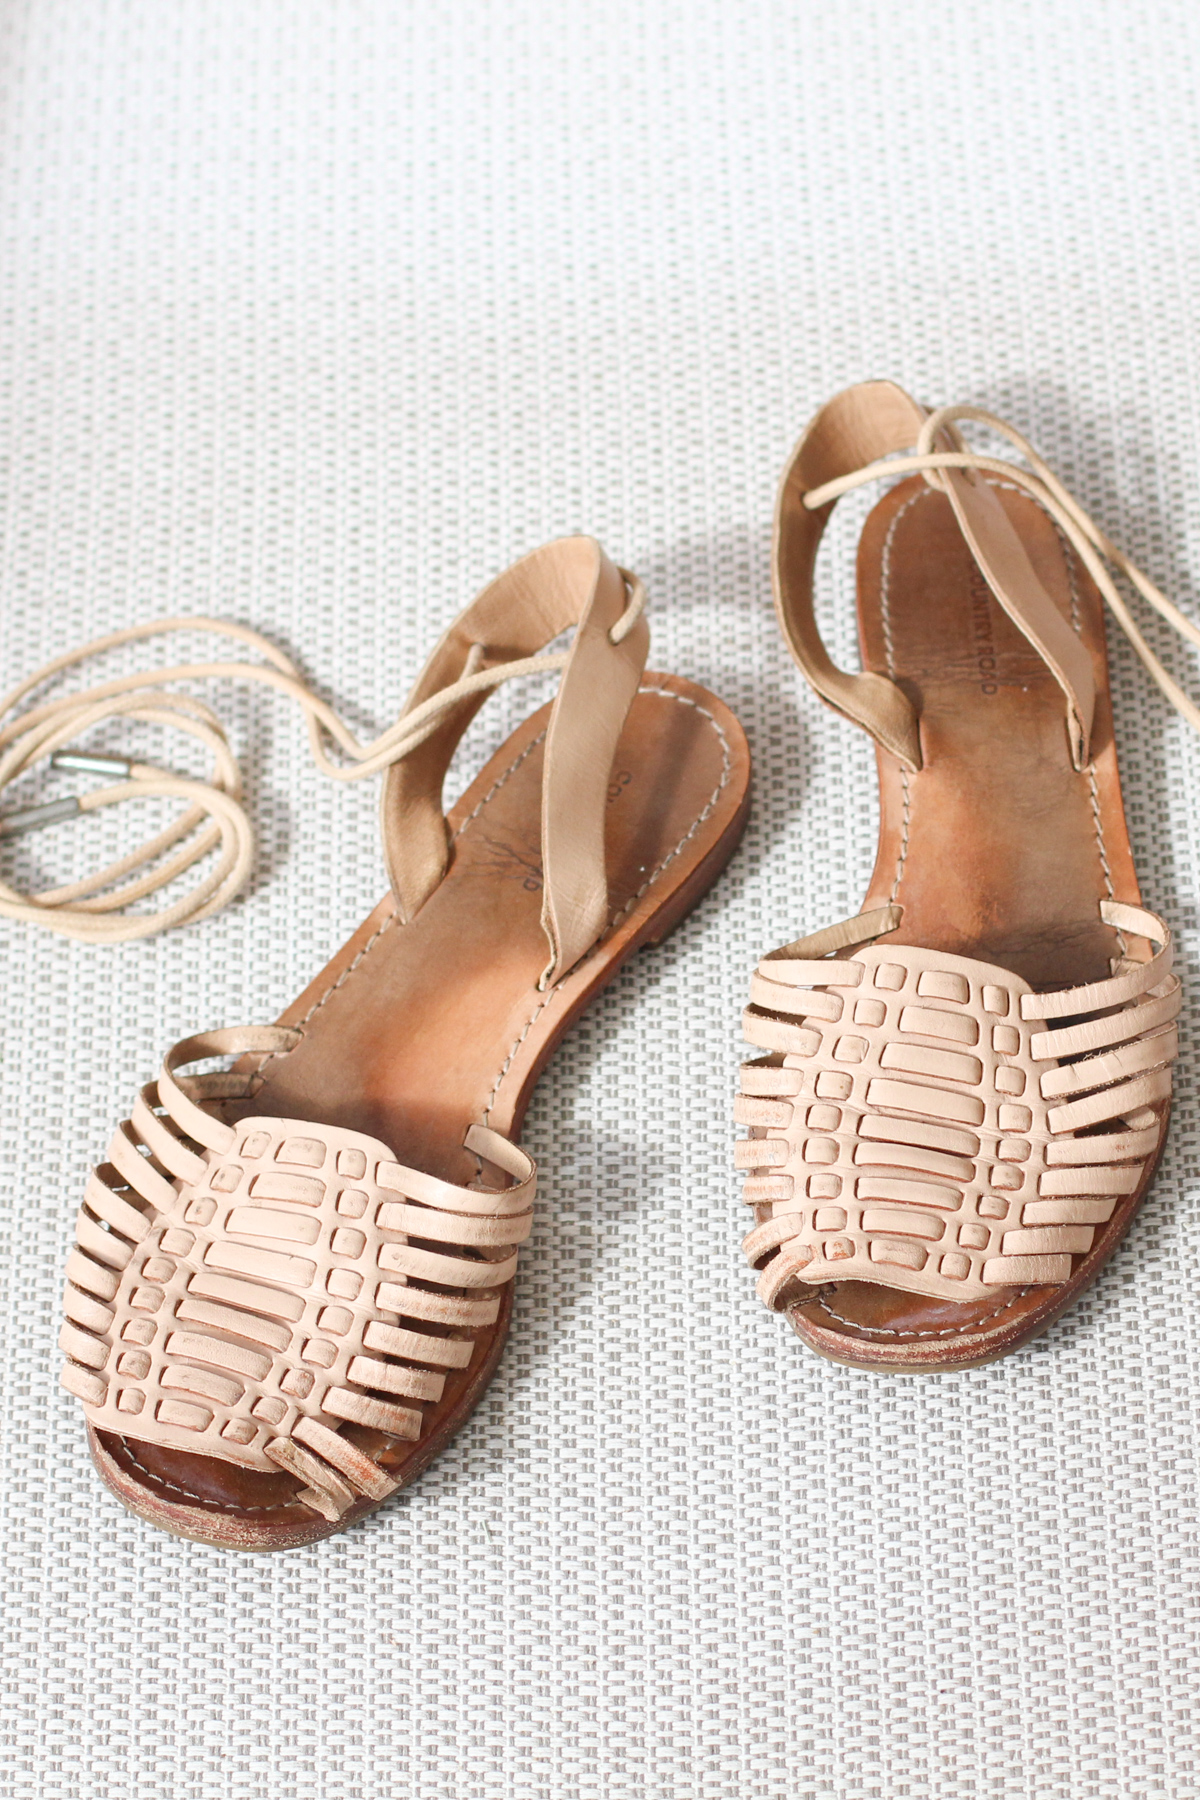 Replicating my favourite sandals: Part 1, the plan!